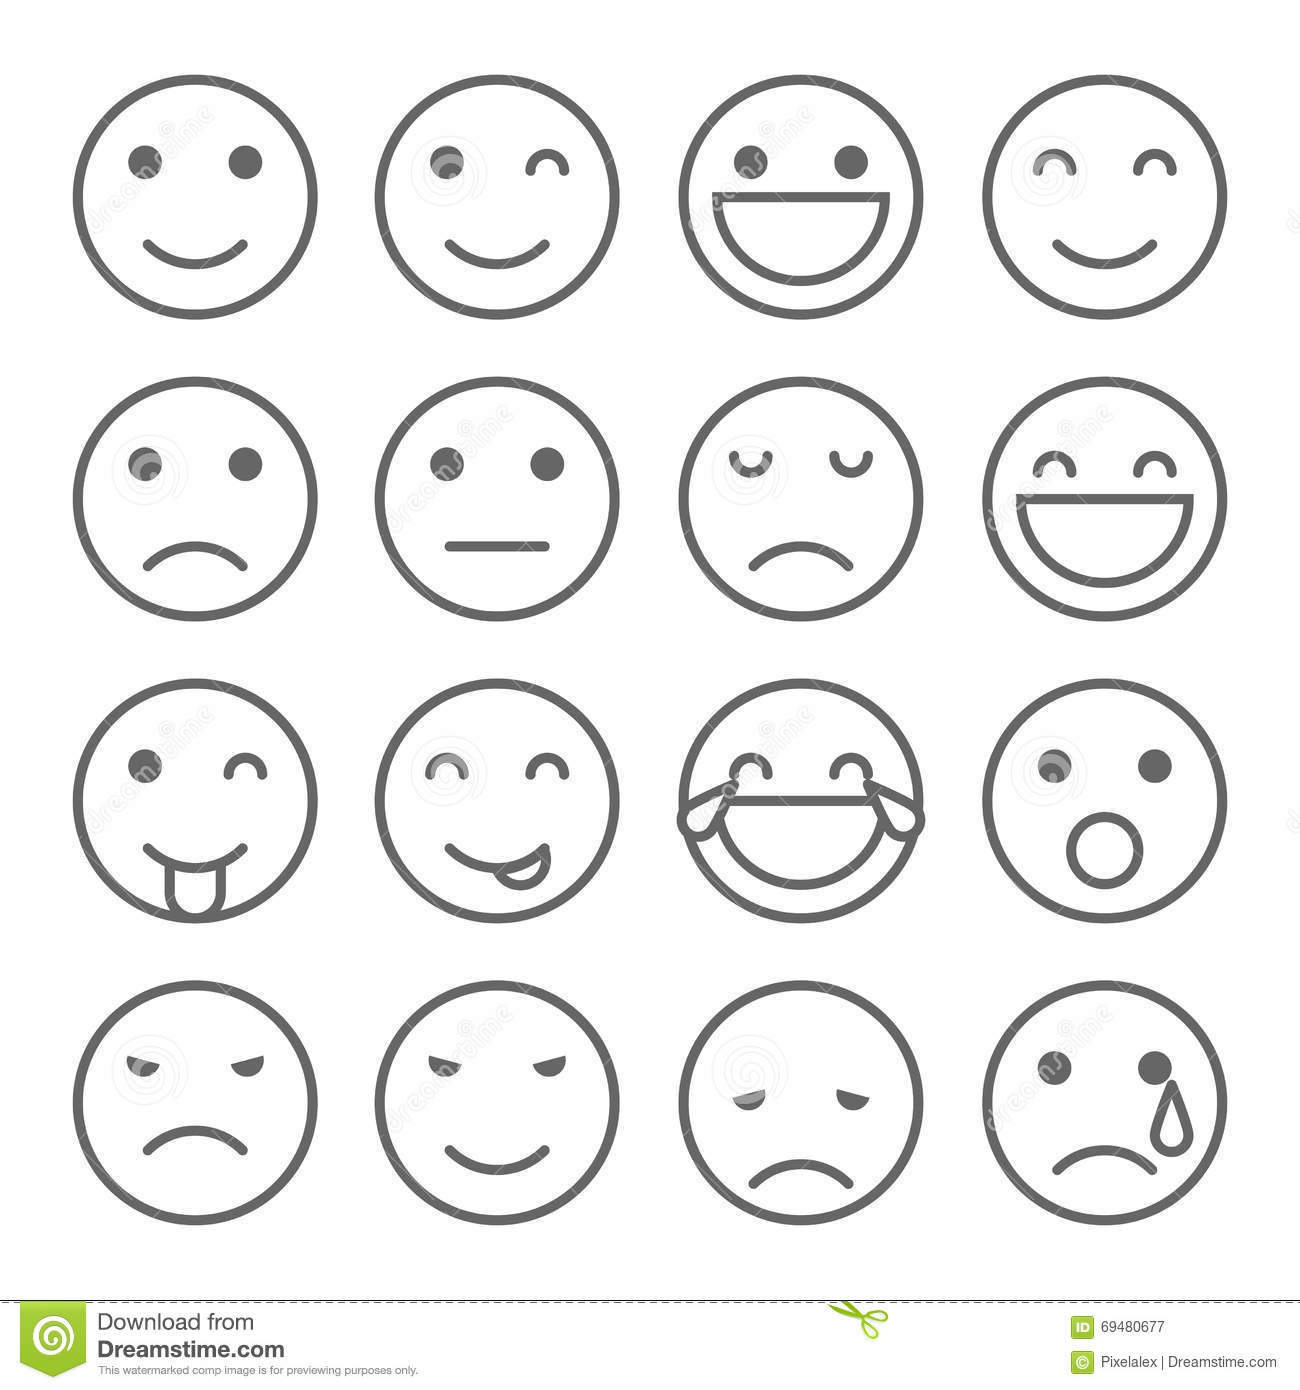 Emoji Faces Simple Icons Stock Vector Illustration Of